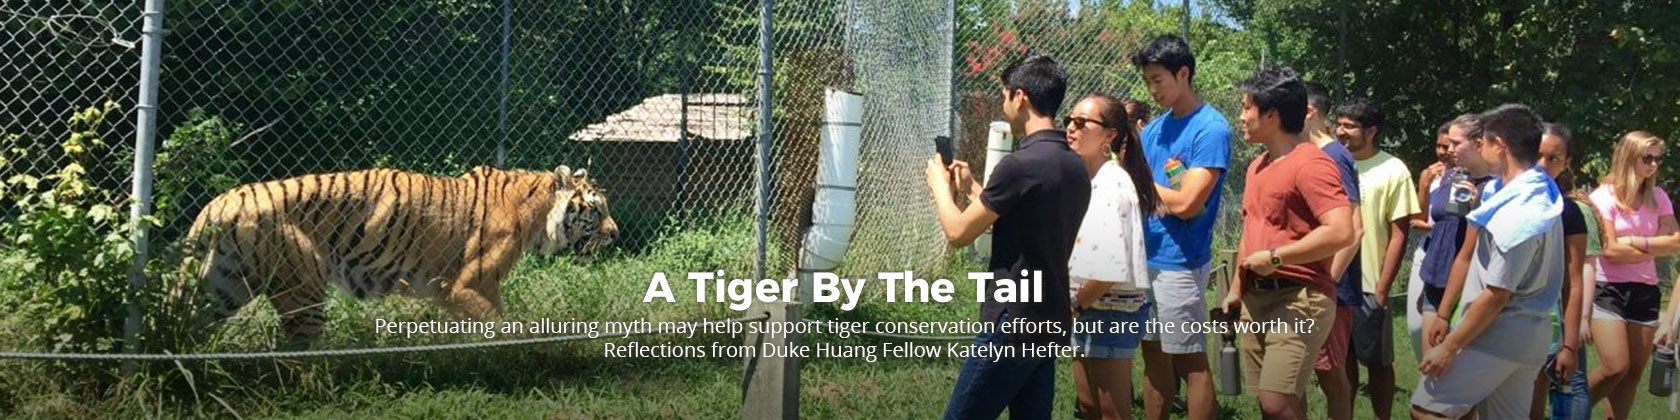 banner-tiger-by-tail